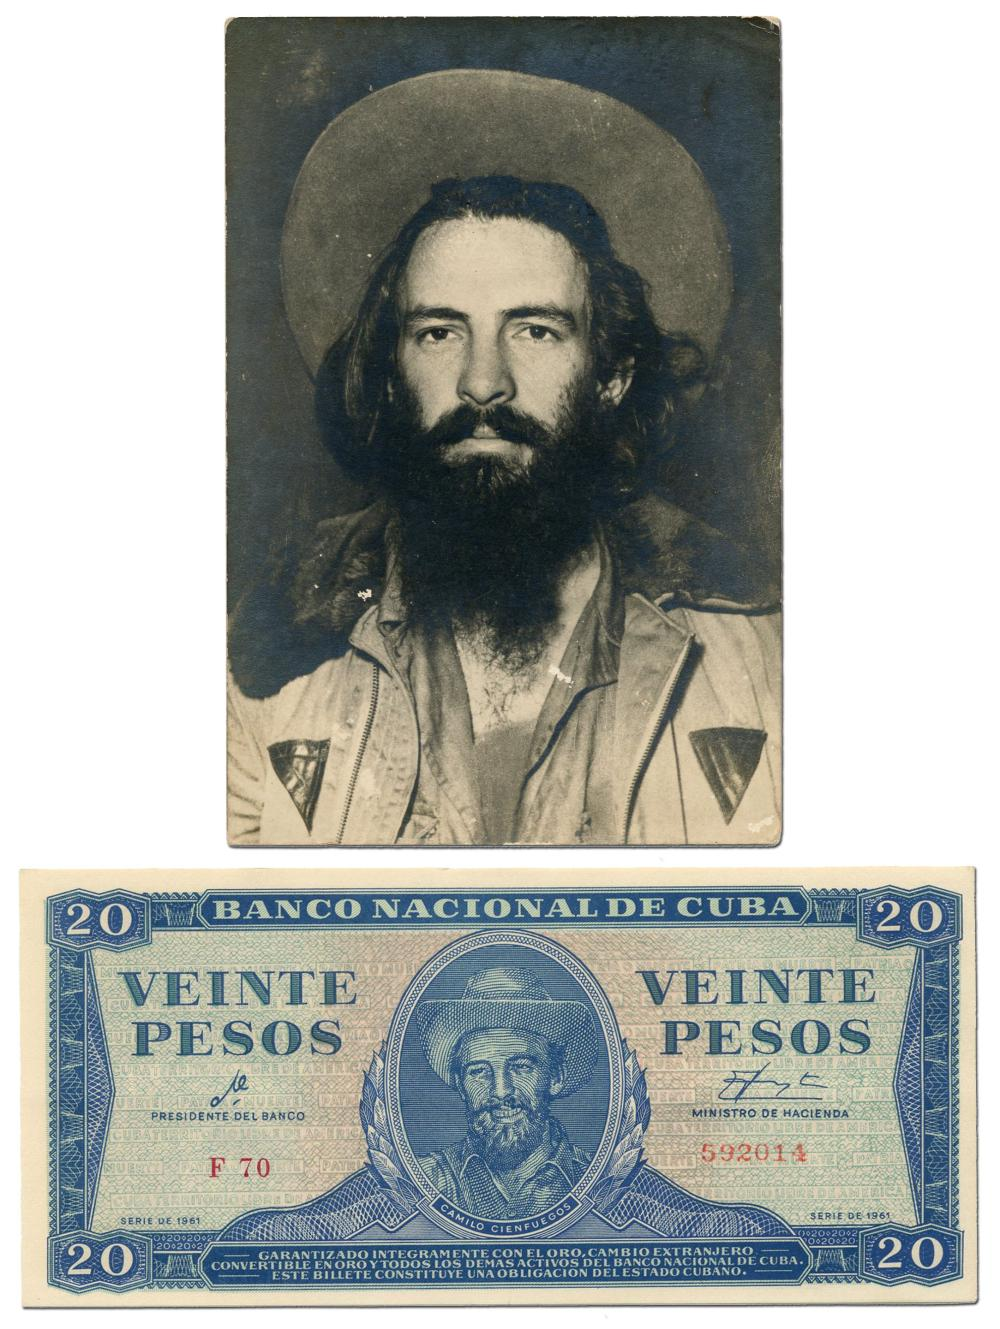 Camilo Cienfuegos, Rare Original Photograph with Bonus Bank Note